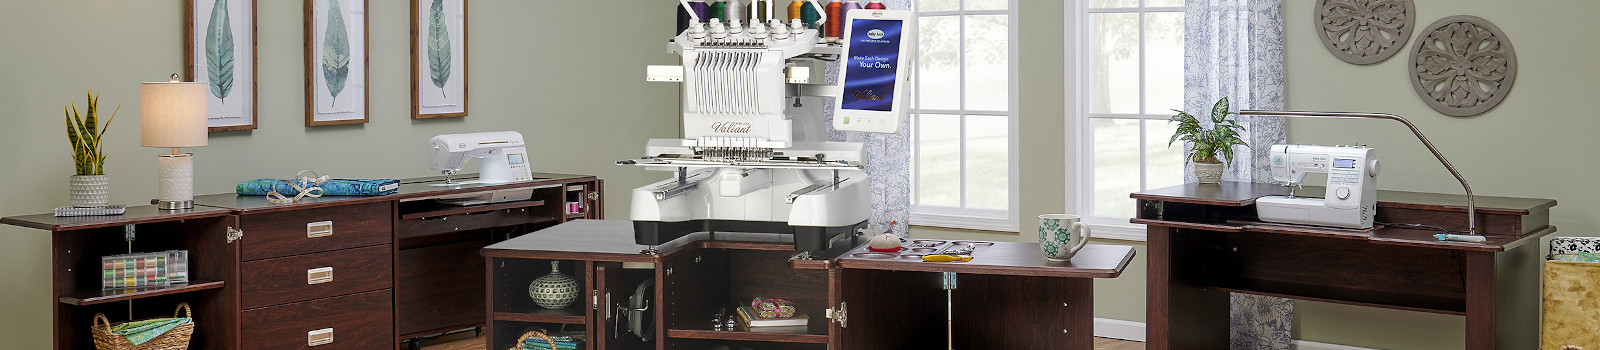 Koala Heritage Embroidery Center Sewing Cabinet